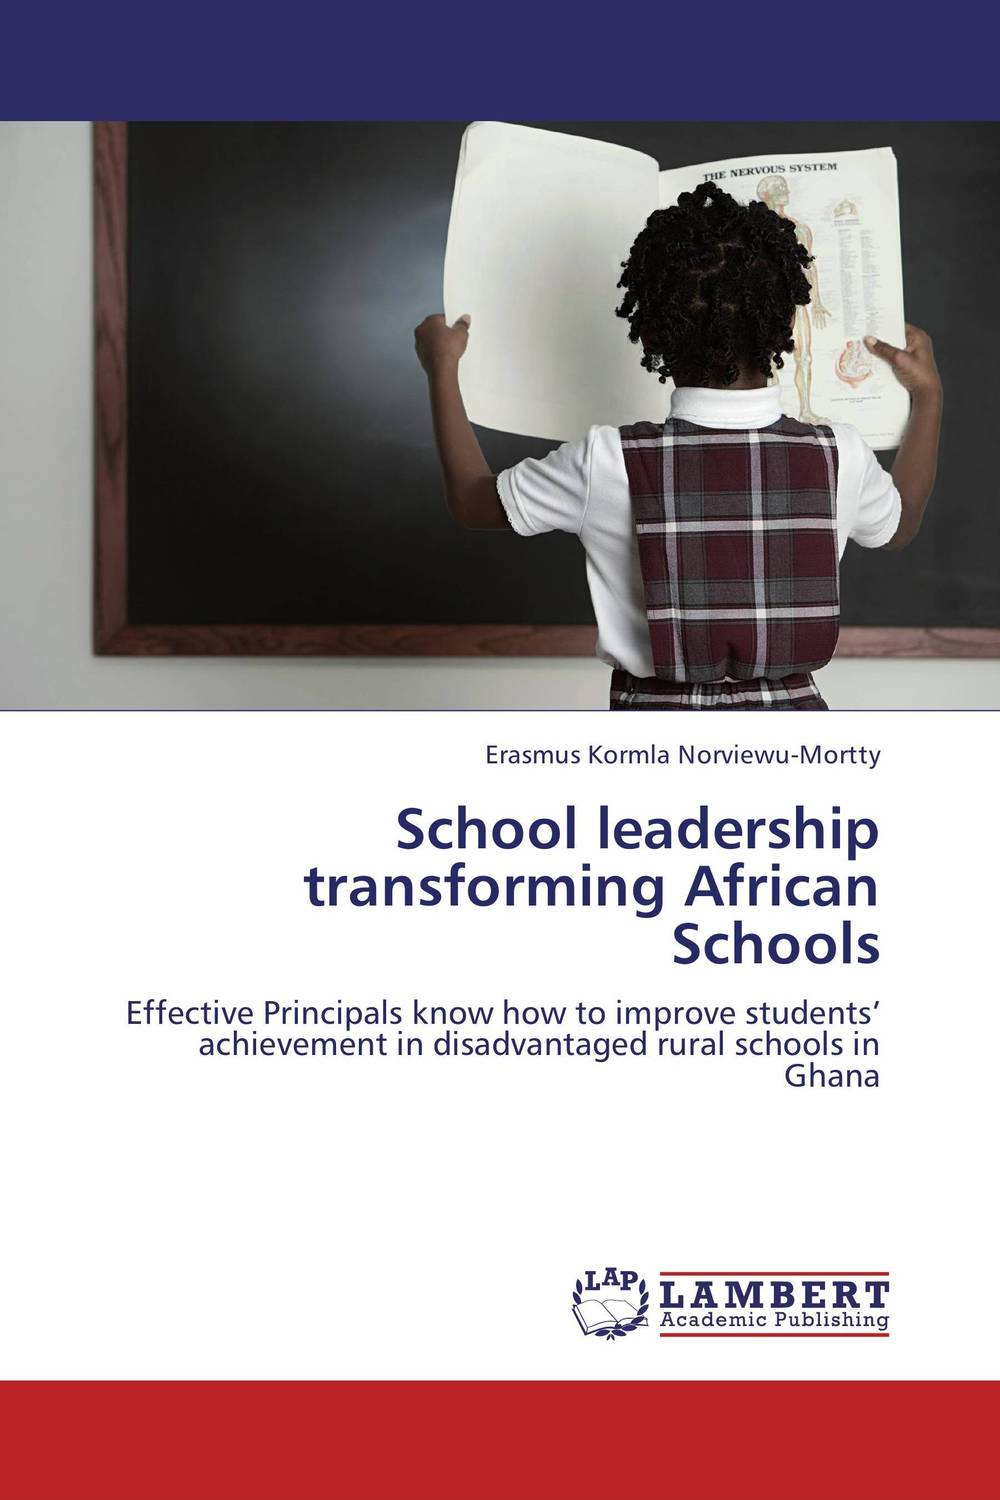 School leadership transforming African Schools